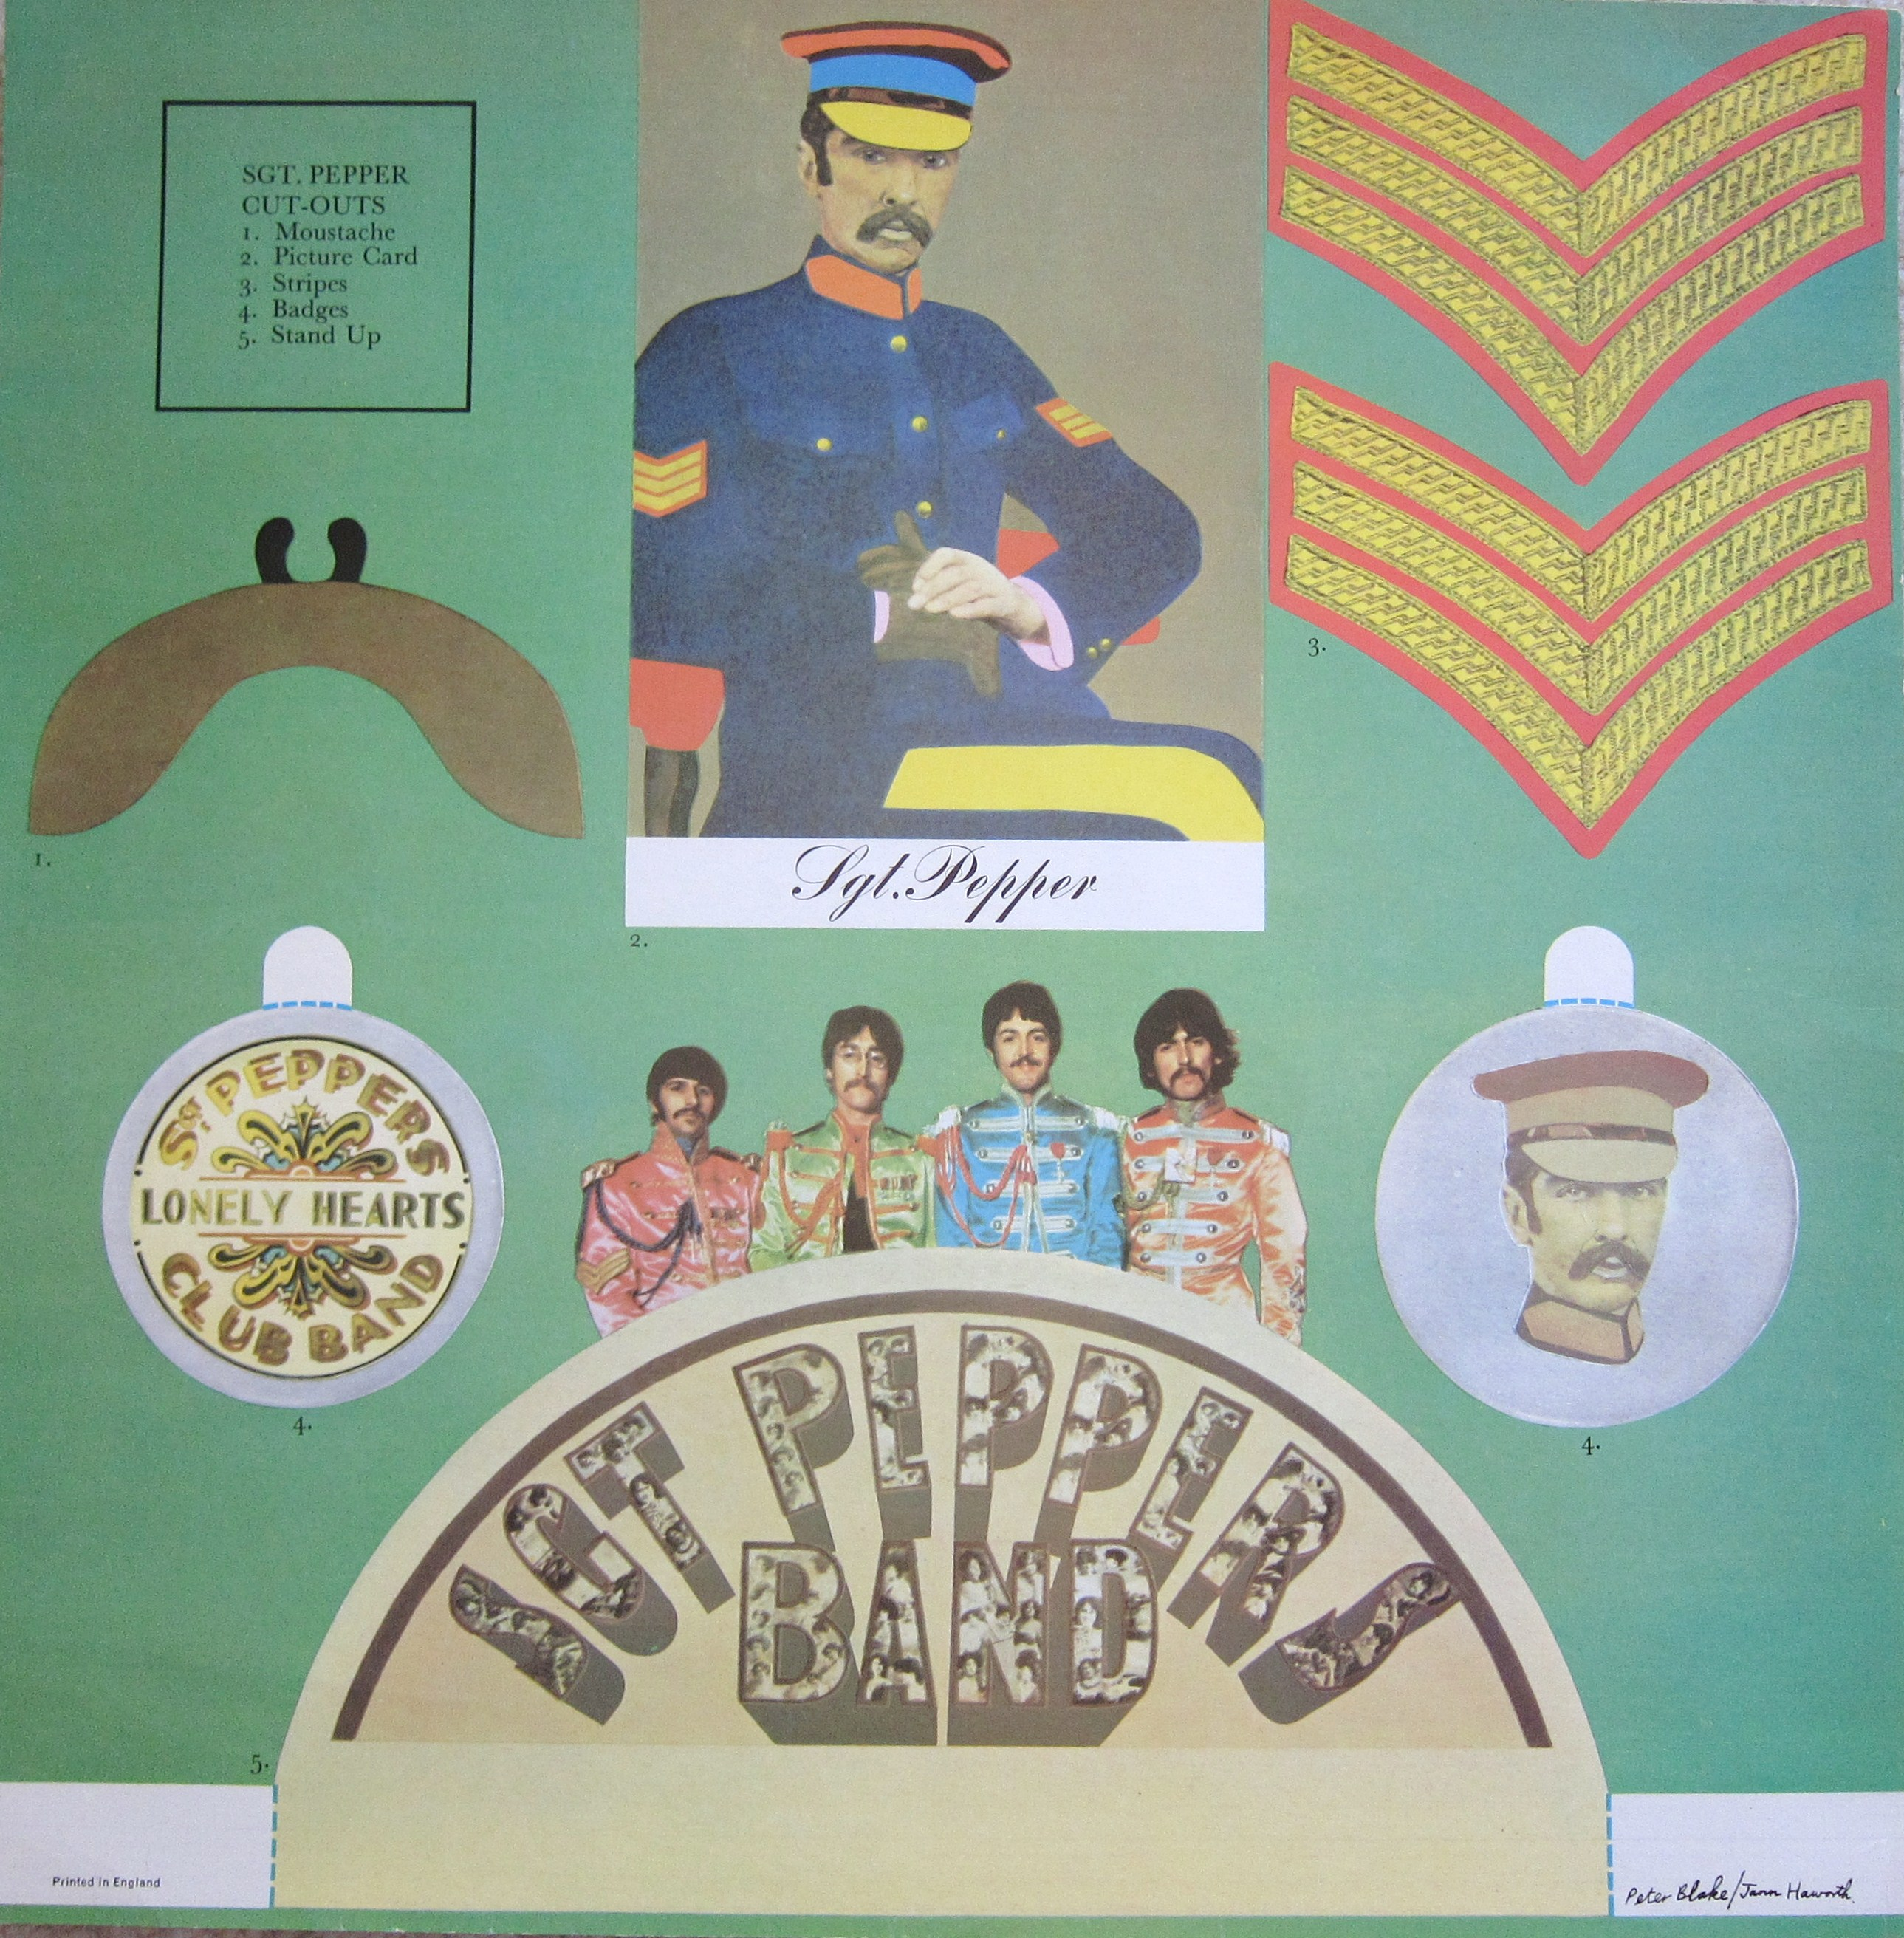 The Beatles Sgt Pepper Cut Out Every Record Tells A Story